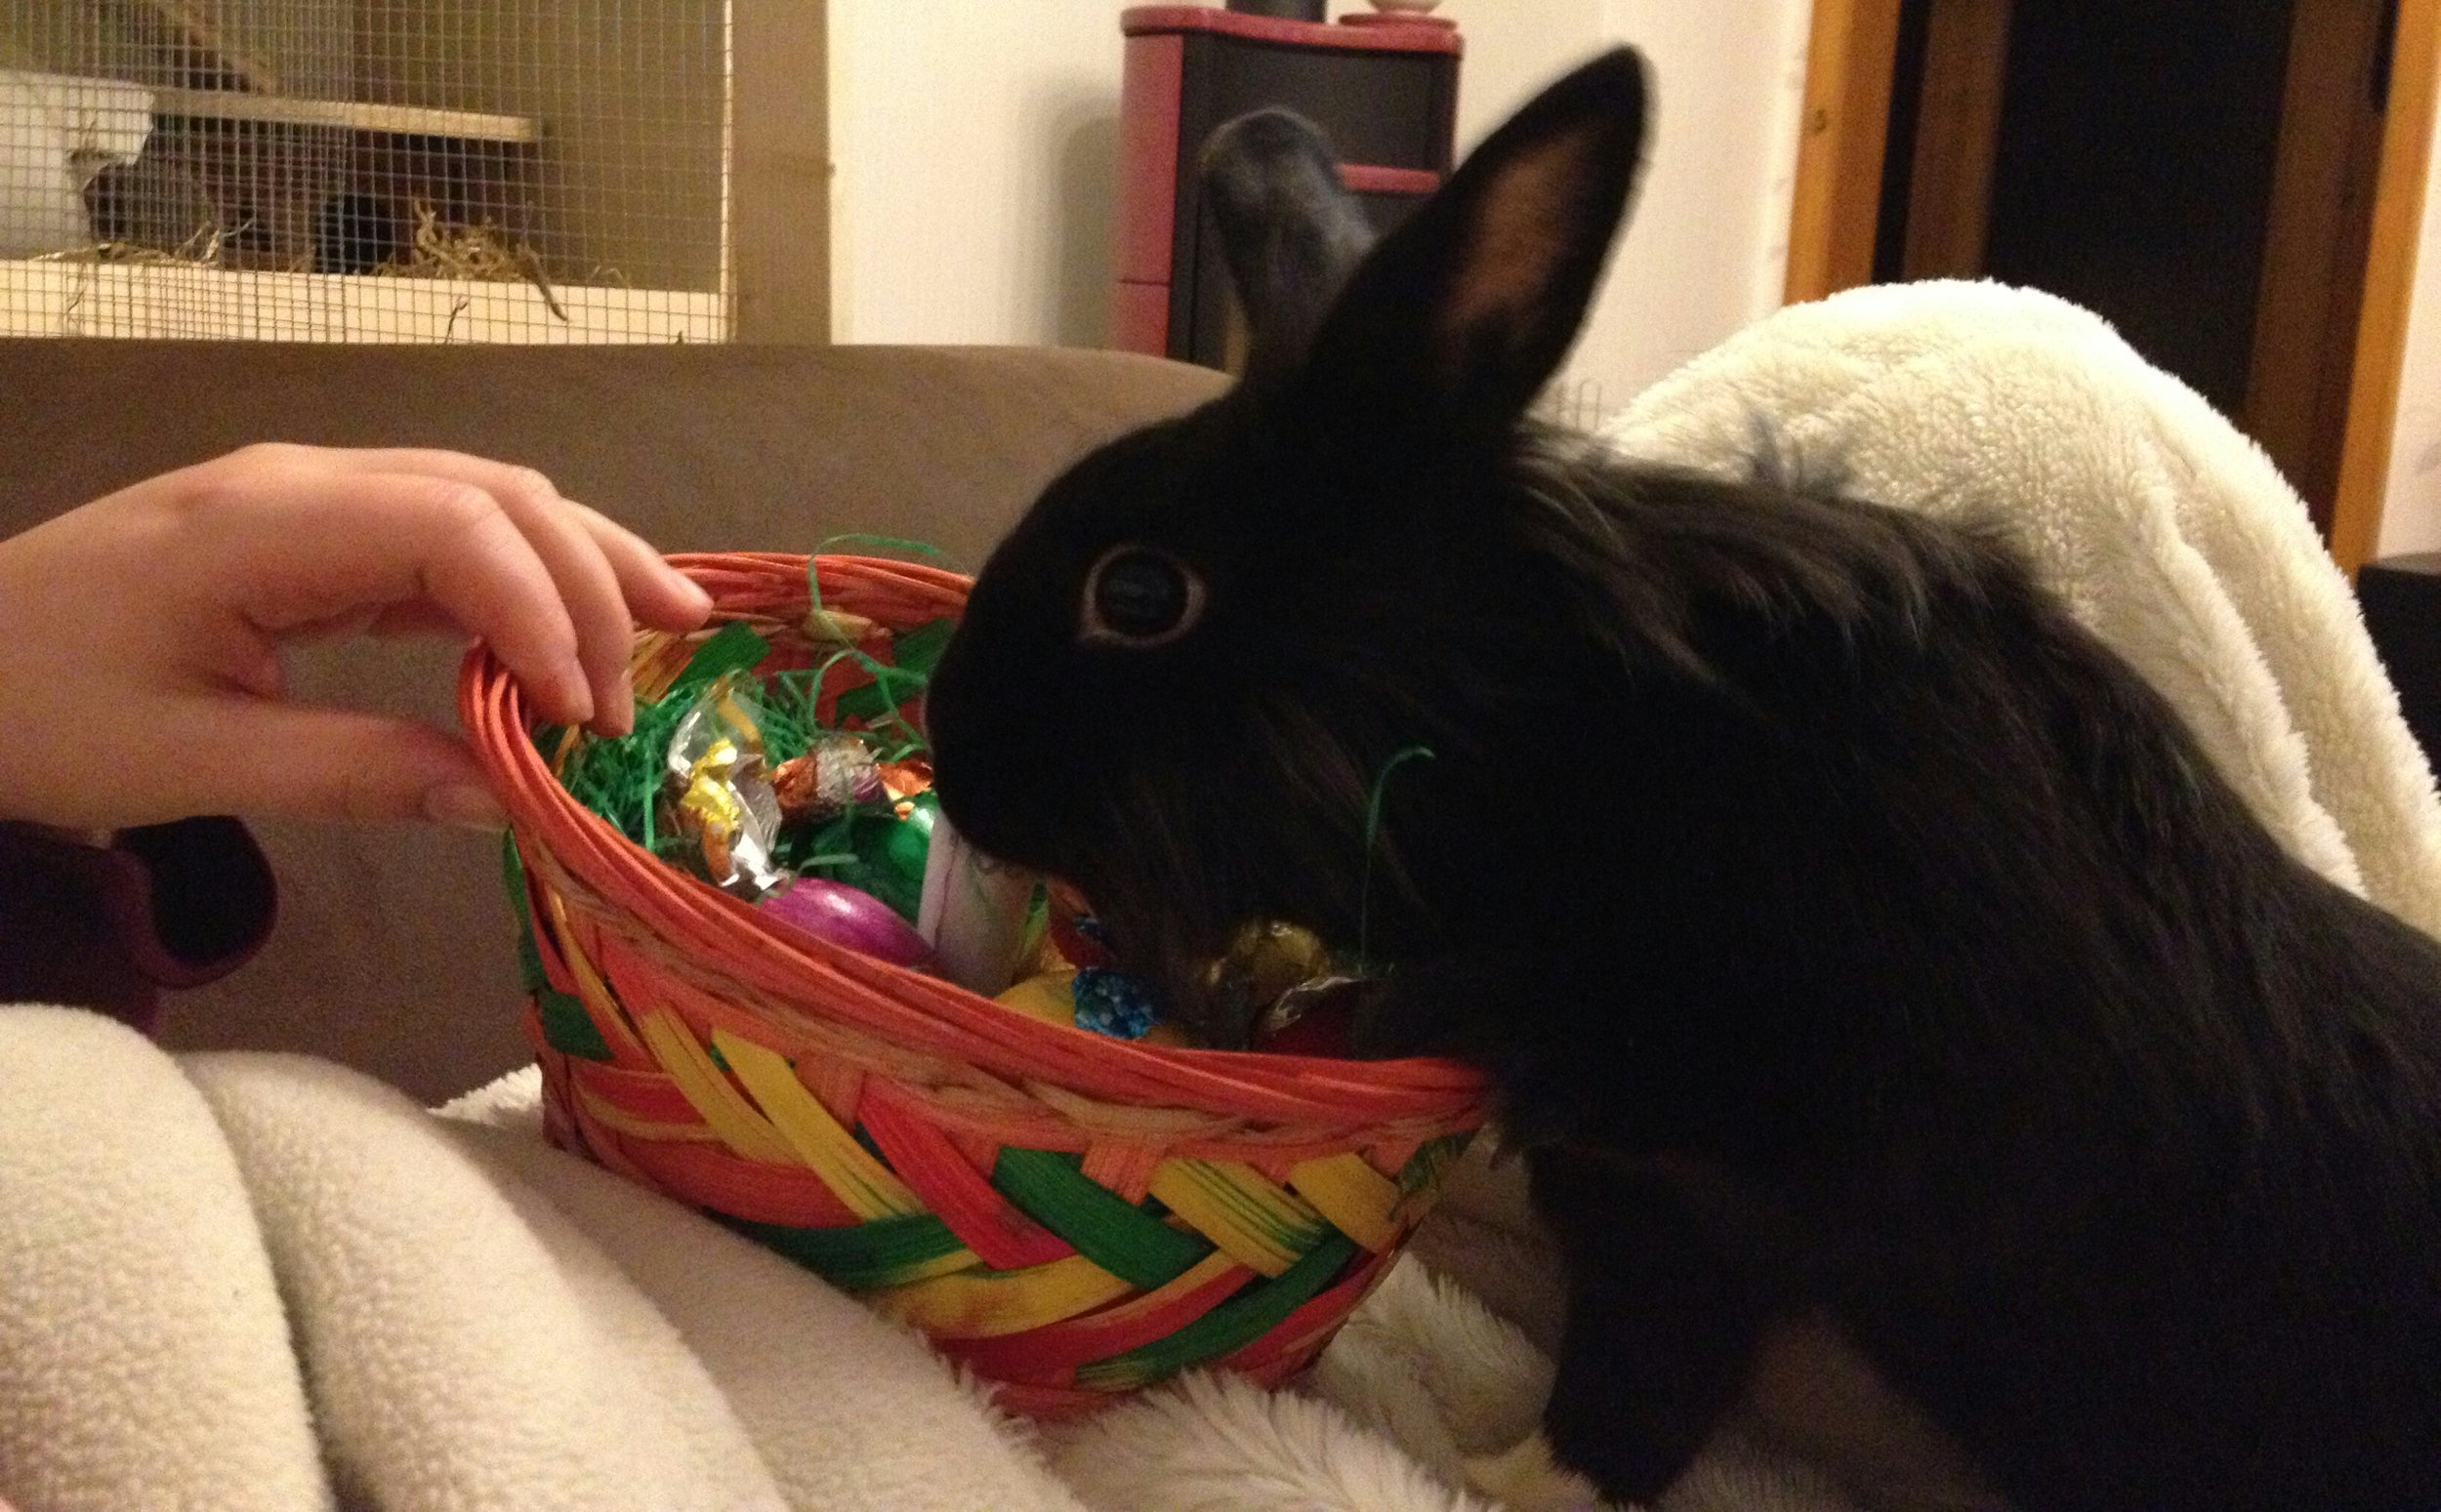 Bunny Searches for Some Tasty Greens Amid All of Human's Chocolate